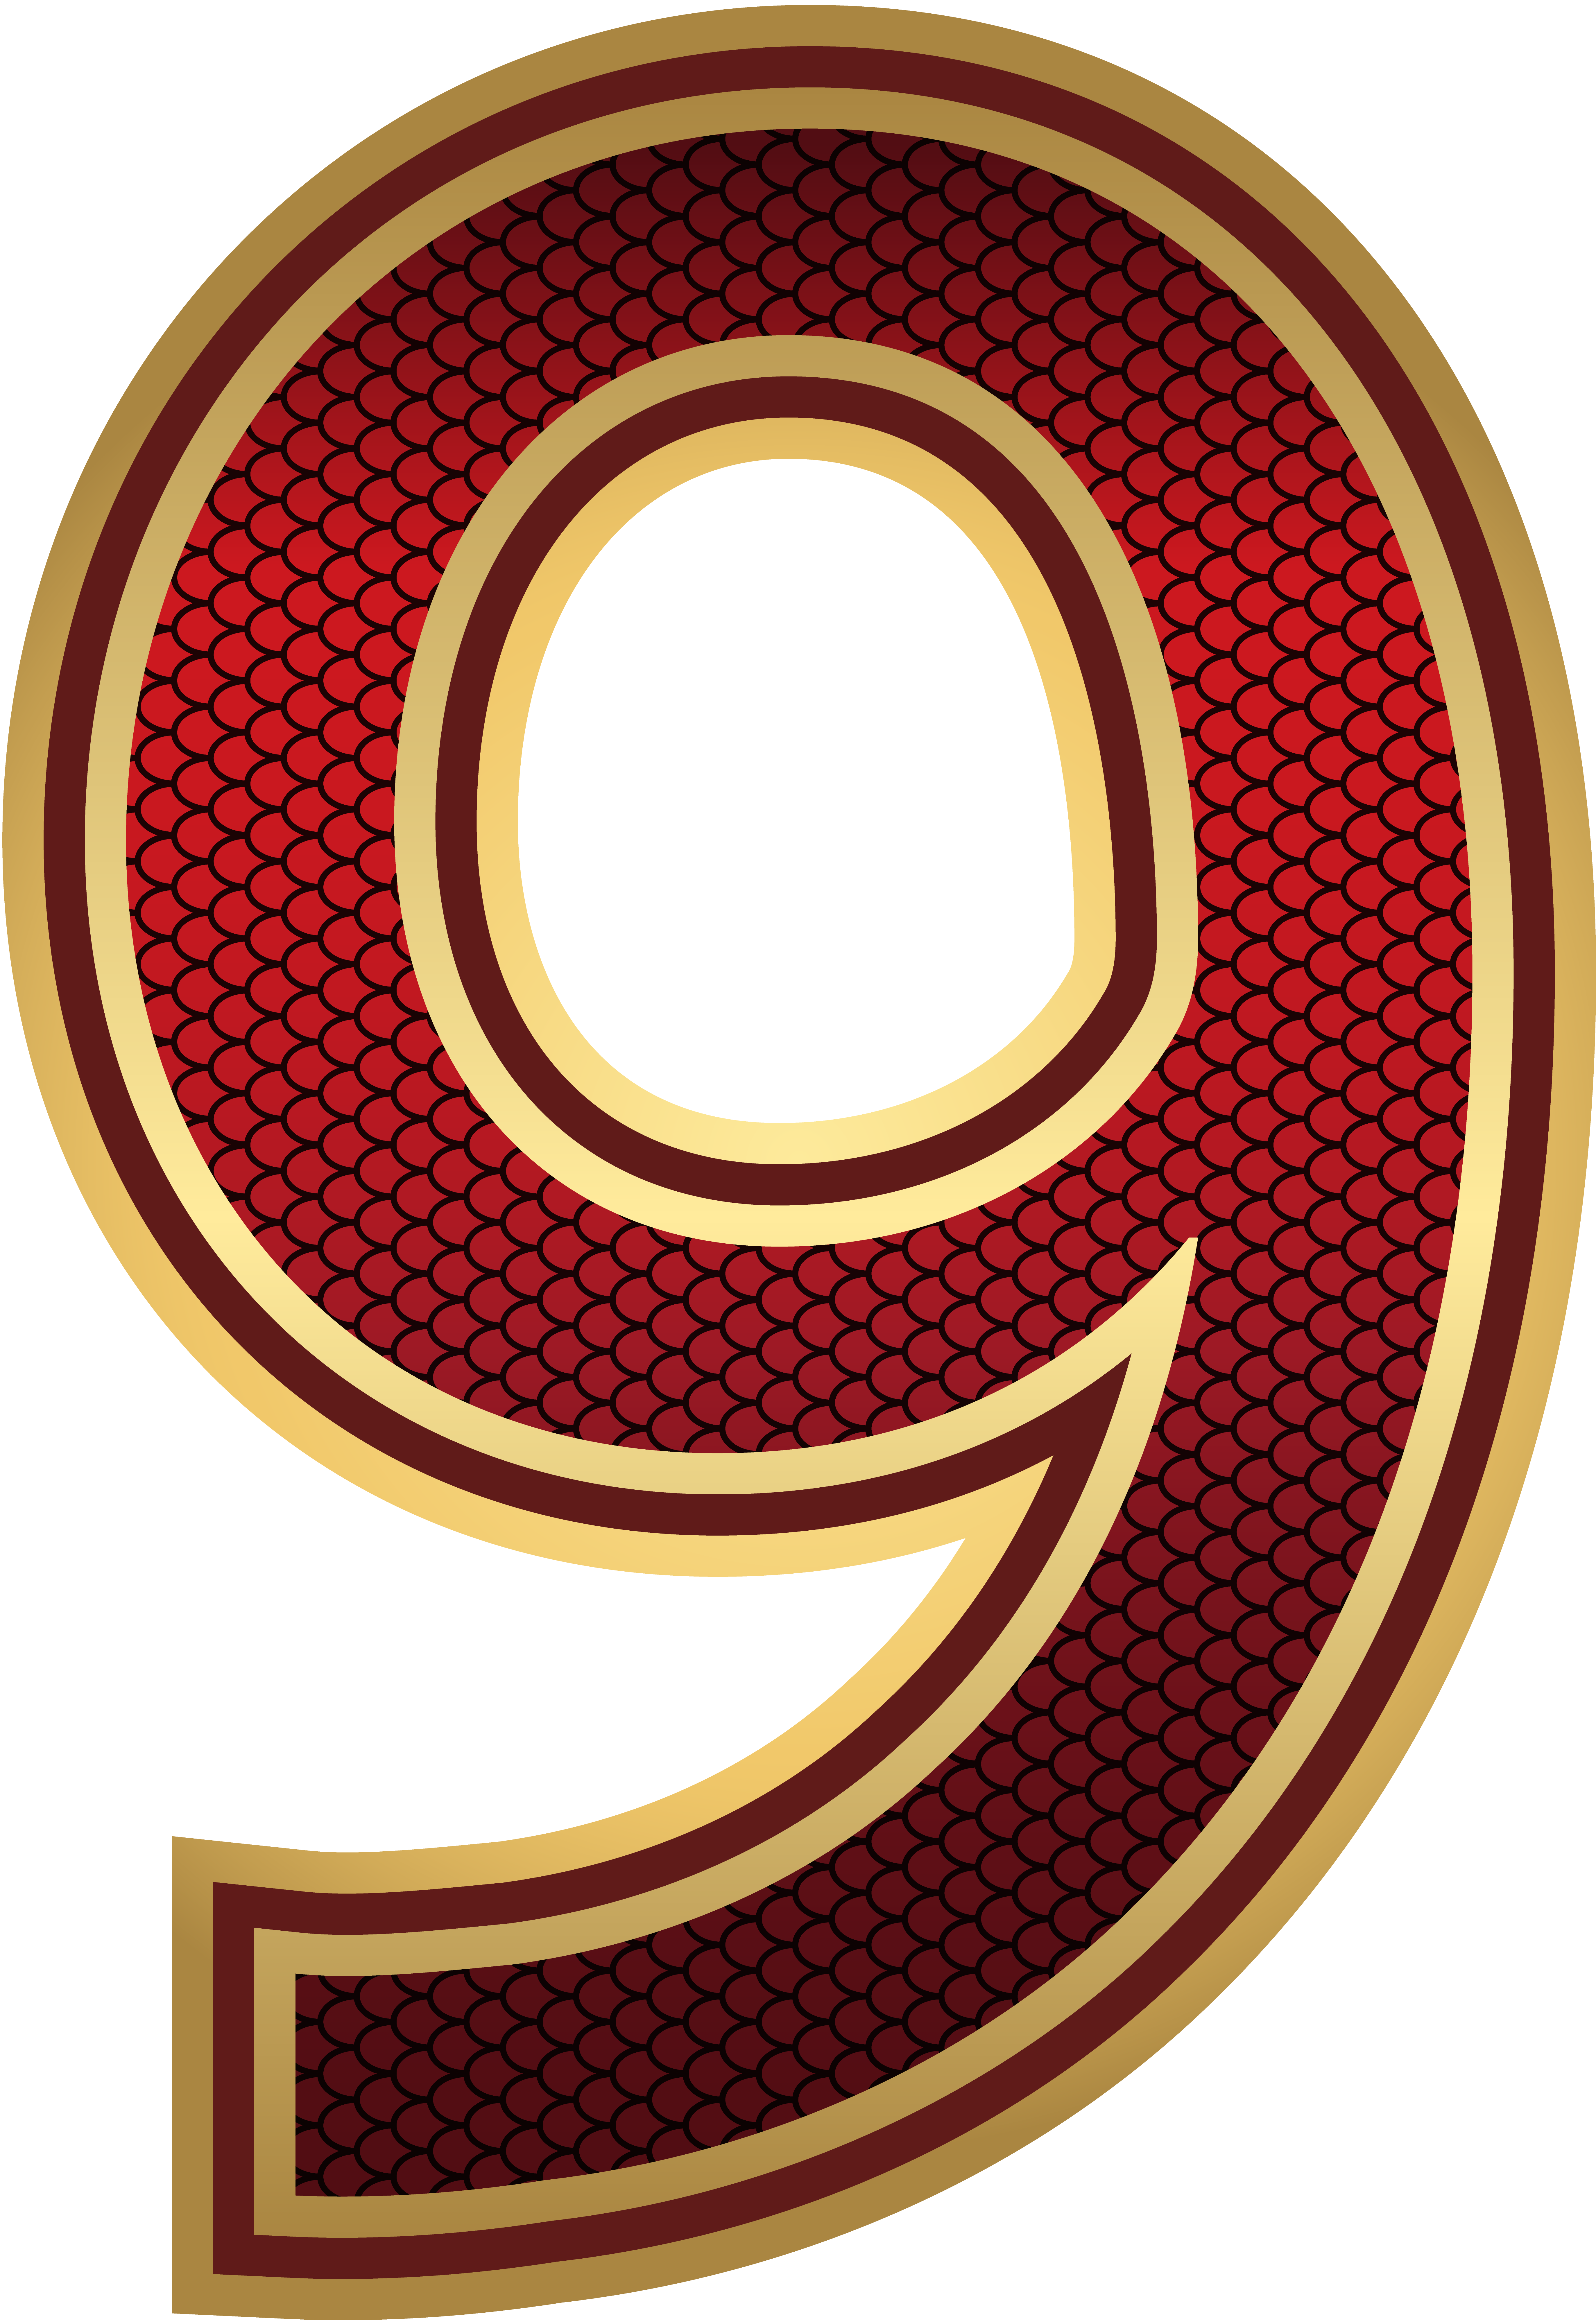 Red And Gold Number Nine Png Image Gallery Yopriceville High Quality Images And Transparent Png Free Clipart Numbers Red And Gold Free Clip Art